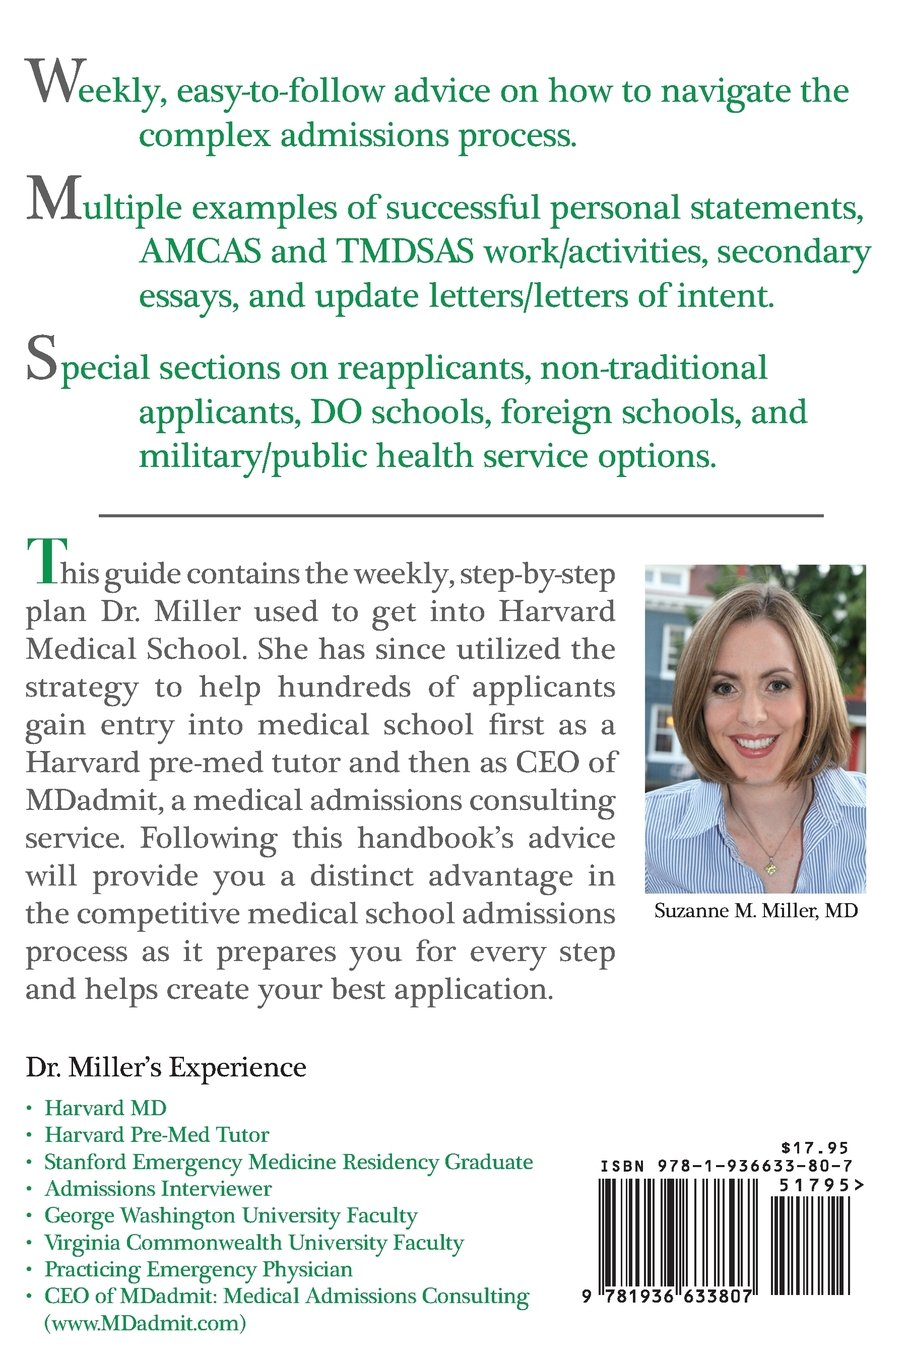 Med School Update Letter.The Medical School Admissions Guide A Harvard Md S Week By